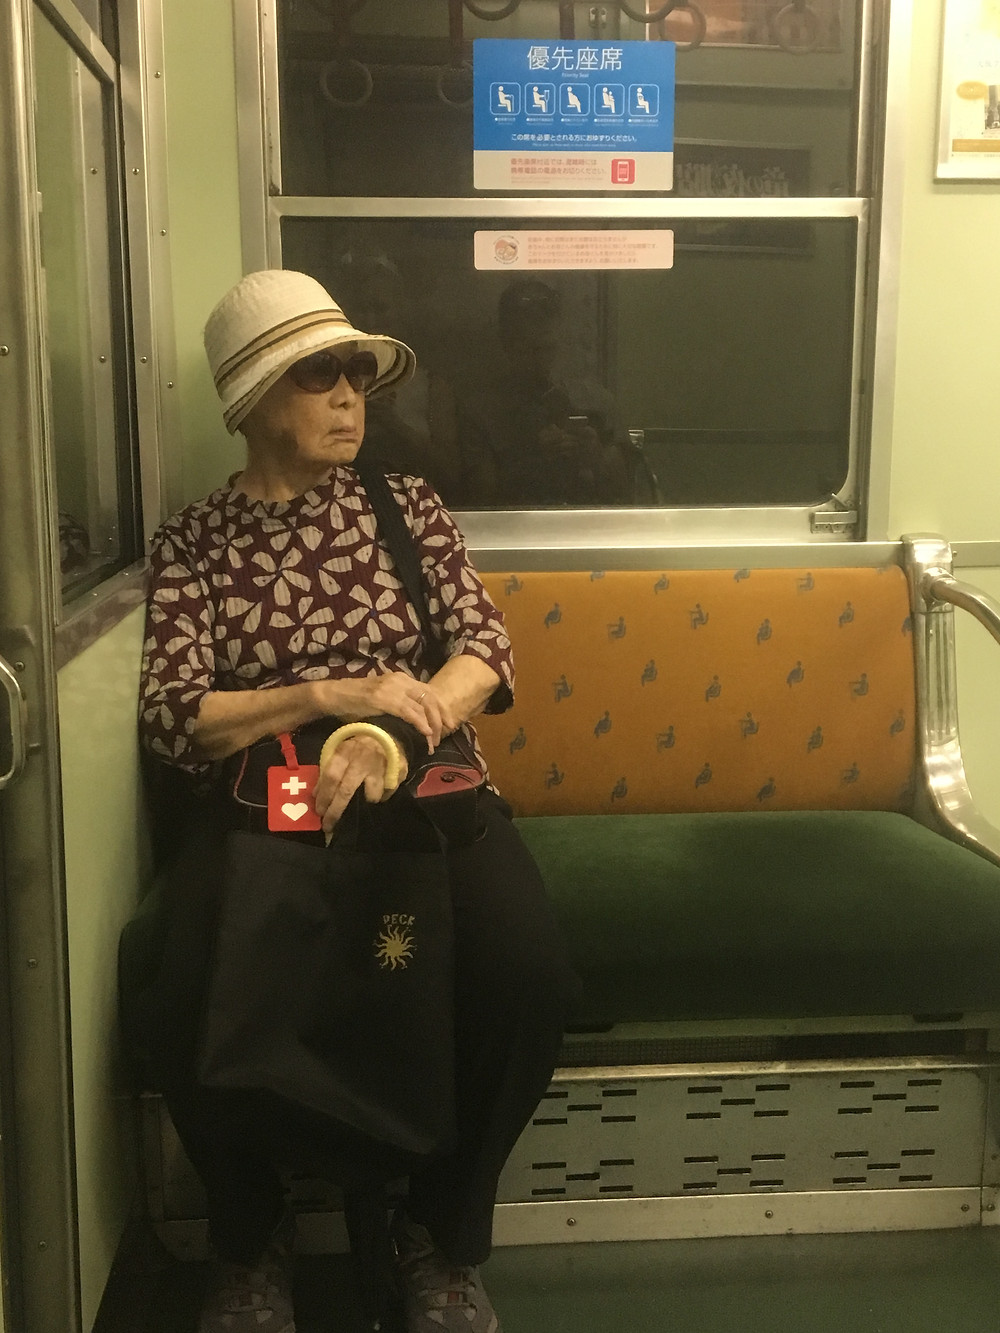 Riding the train in Japan